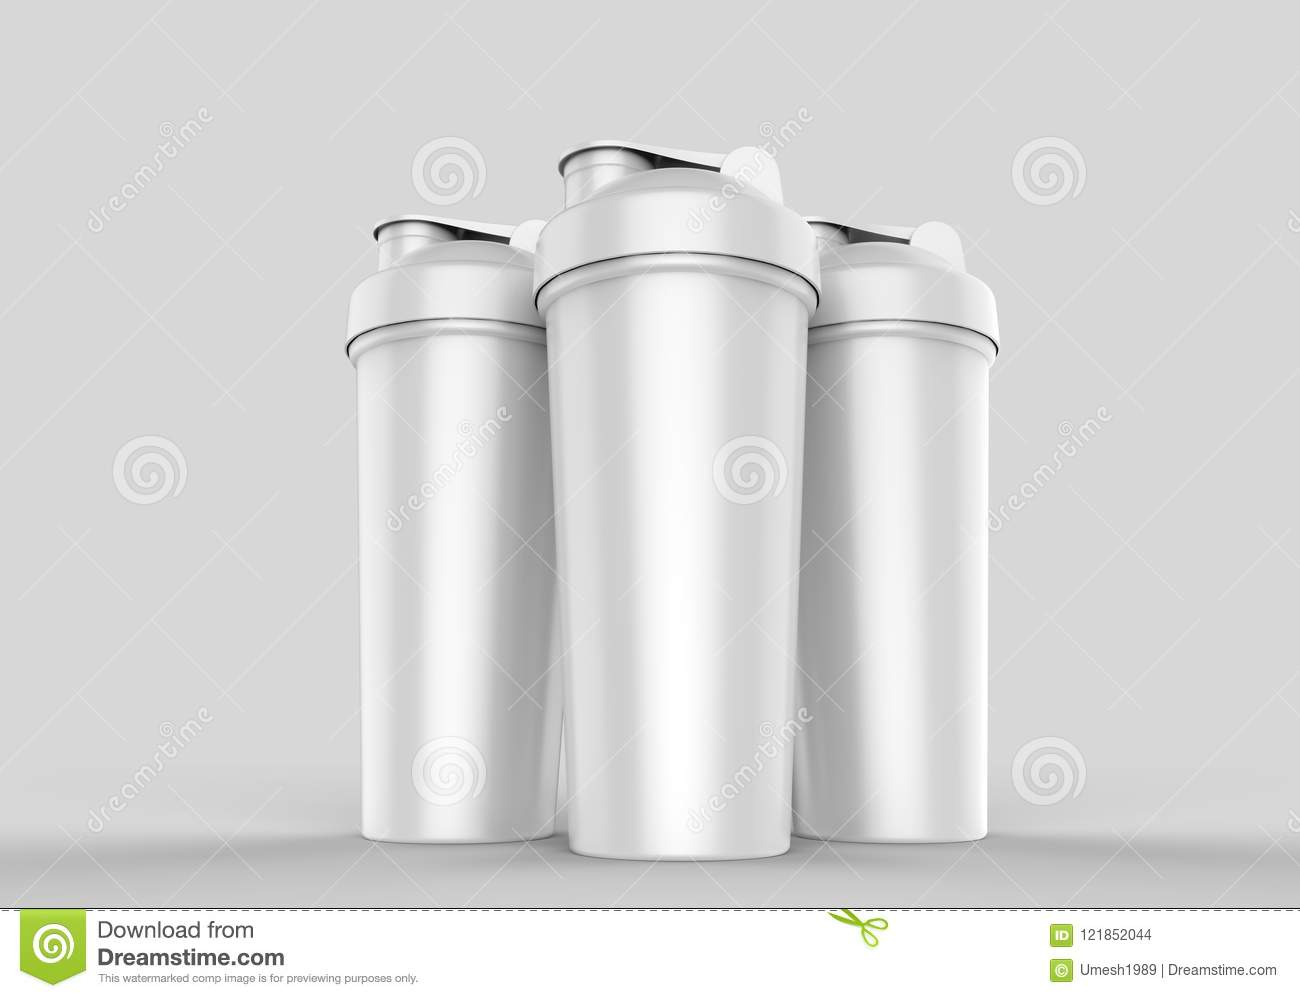 blank white plastic shaker bottle for mock up and template design